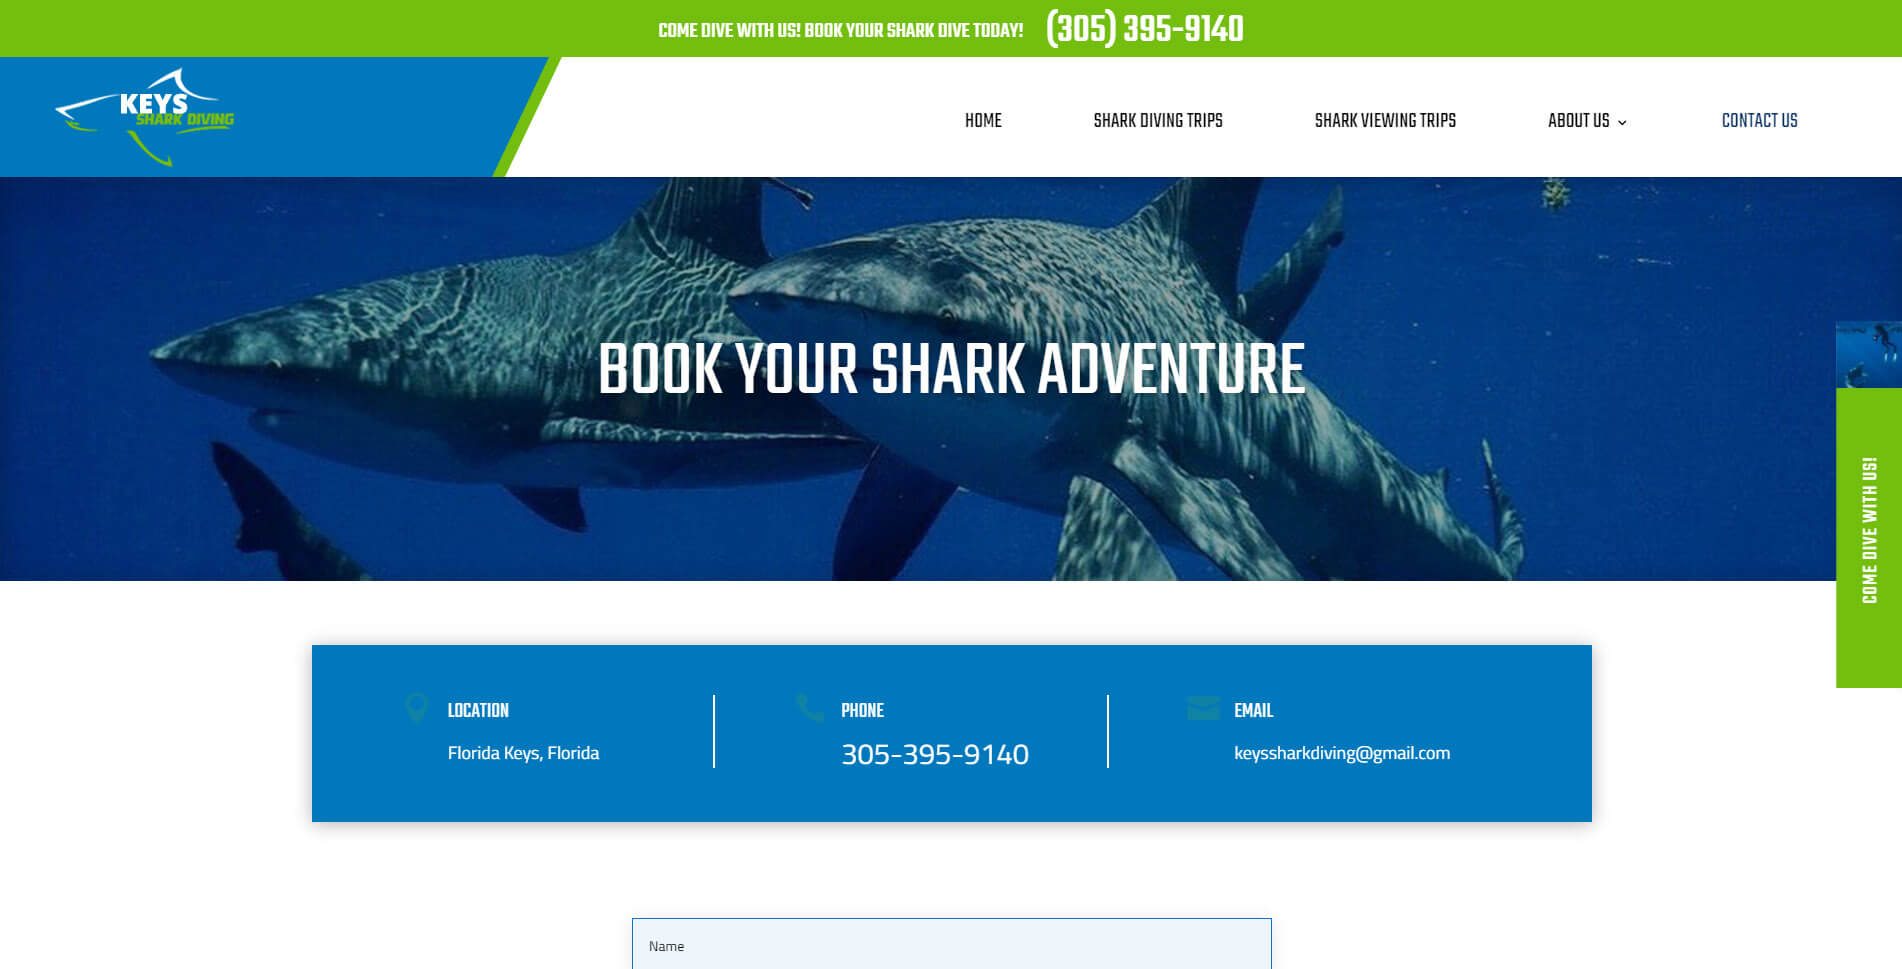 An image of the book now page of Keys Shark Diving, website created by Not Fade Away Marketing